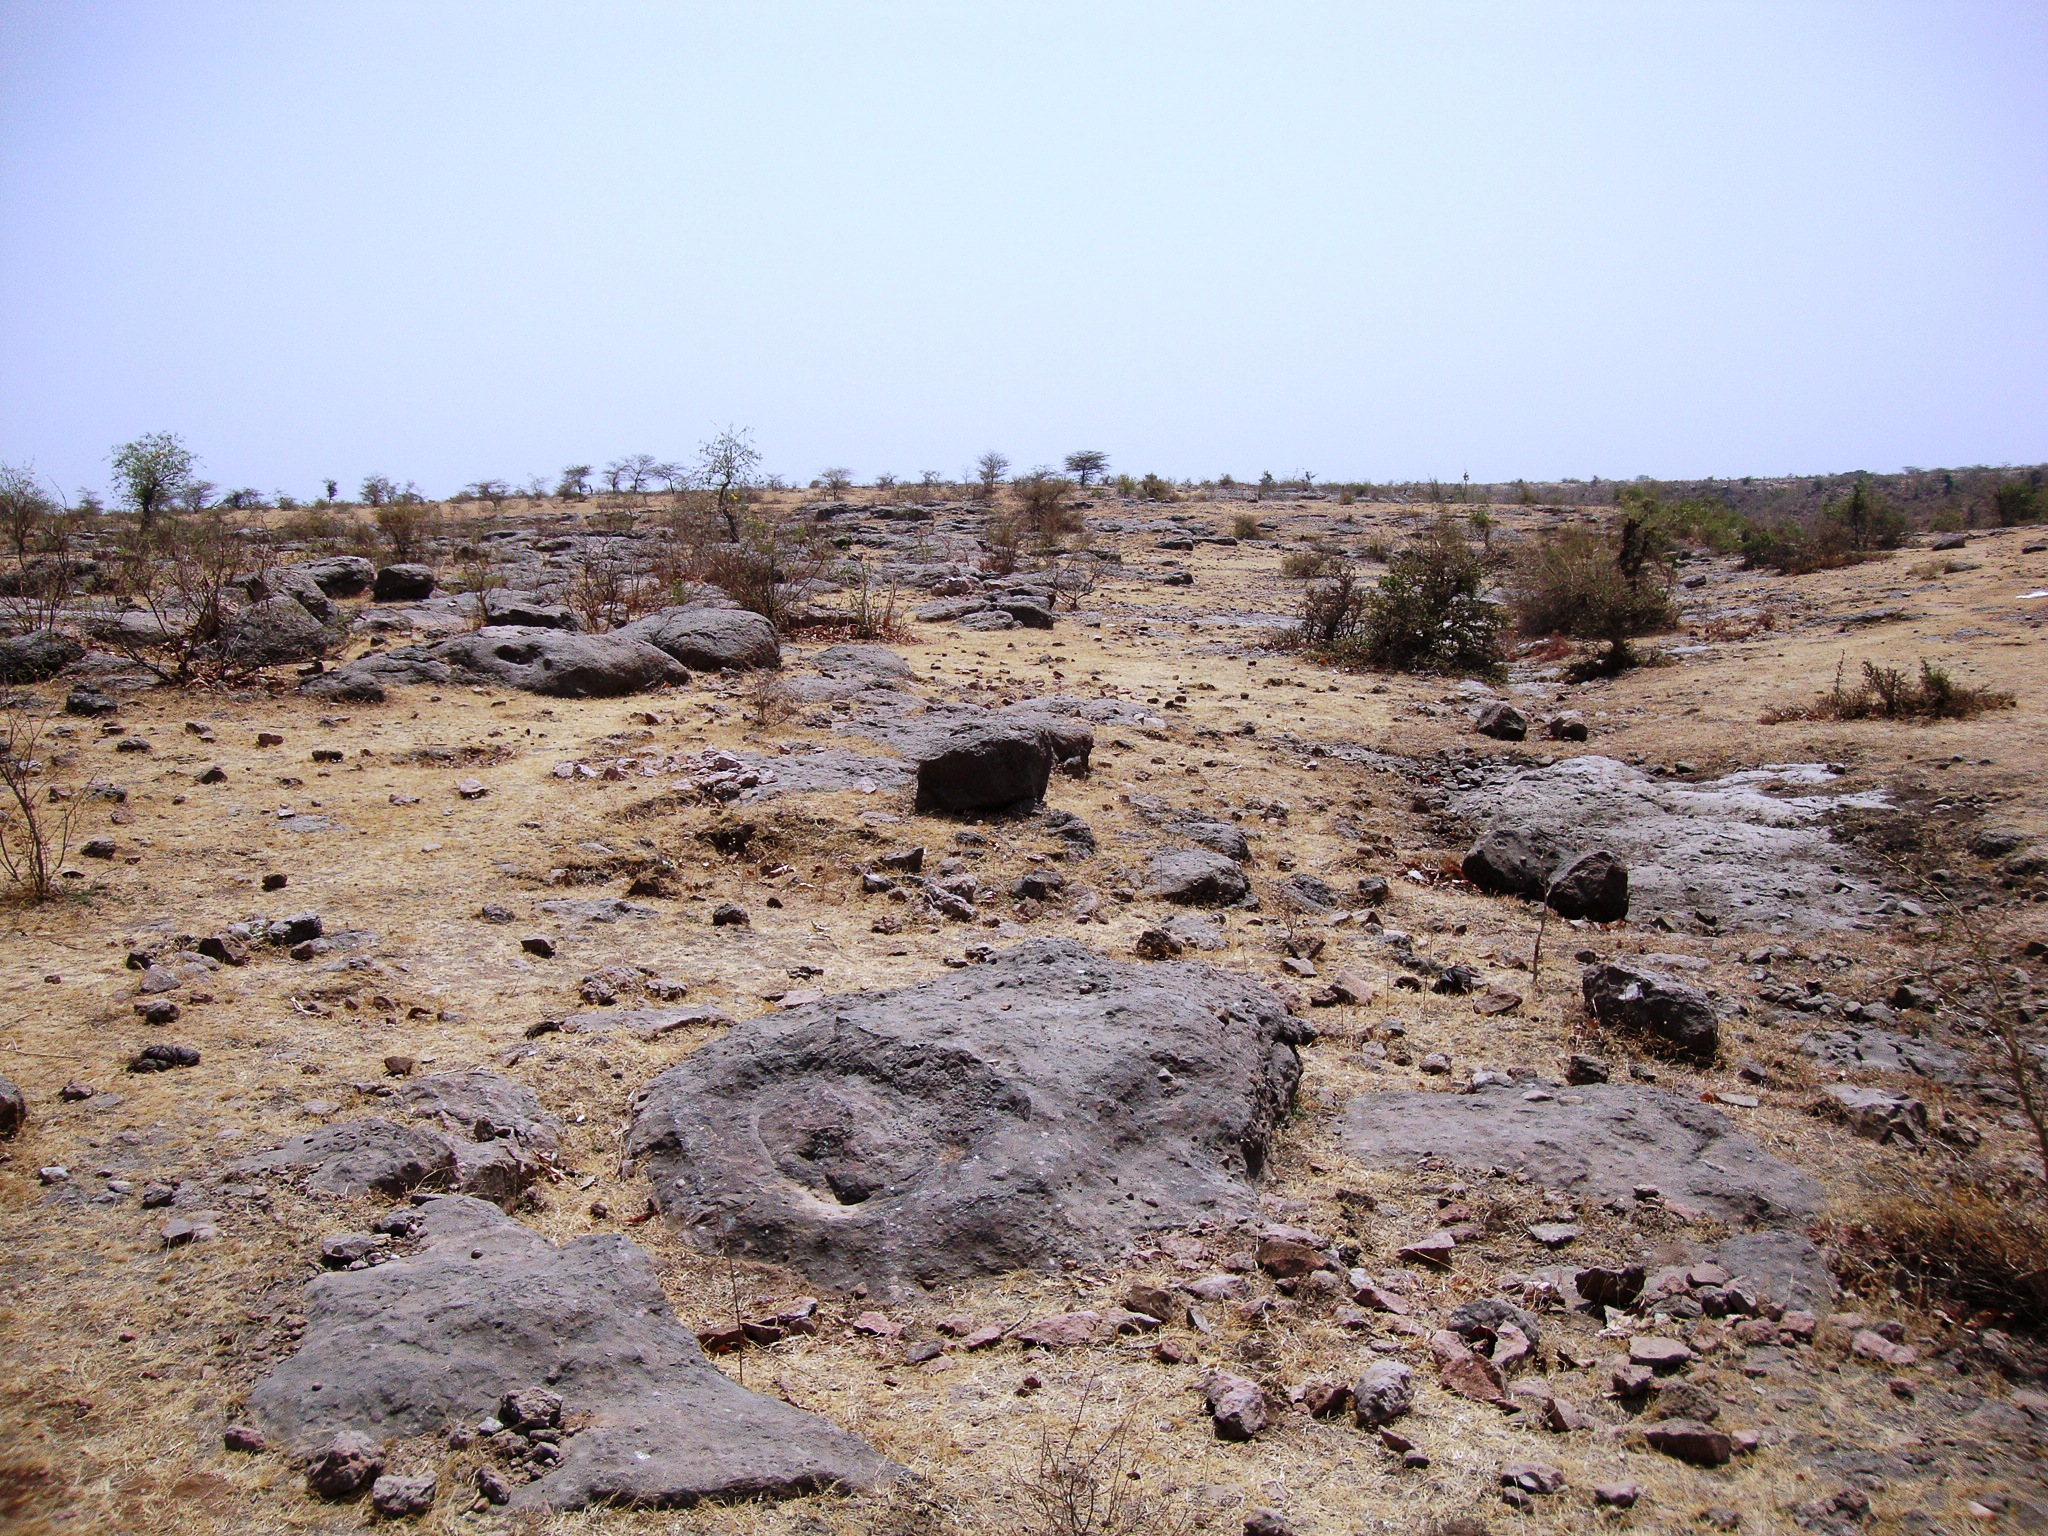 The arid landscape of Dholi Dungri, speckled with rocky outcrops. (Photo courtesy: Dhananjay Mohabey)